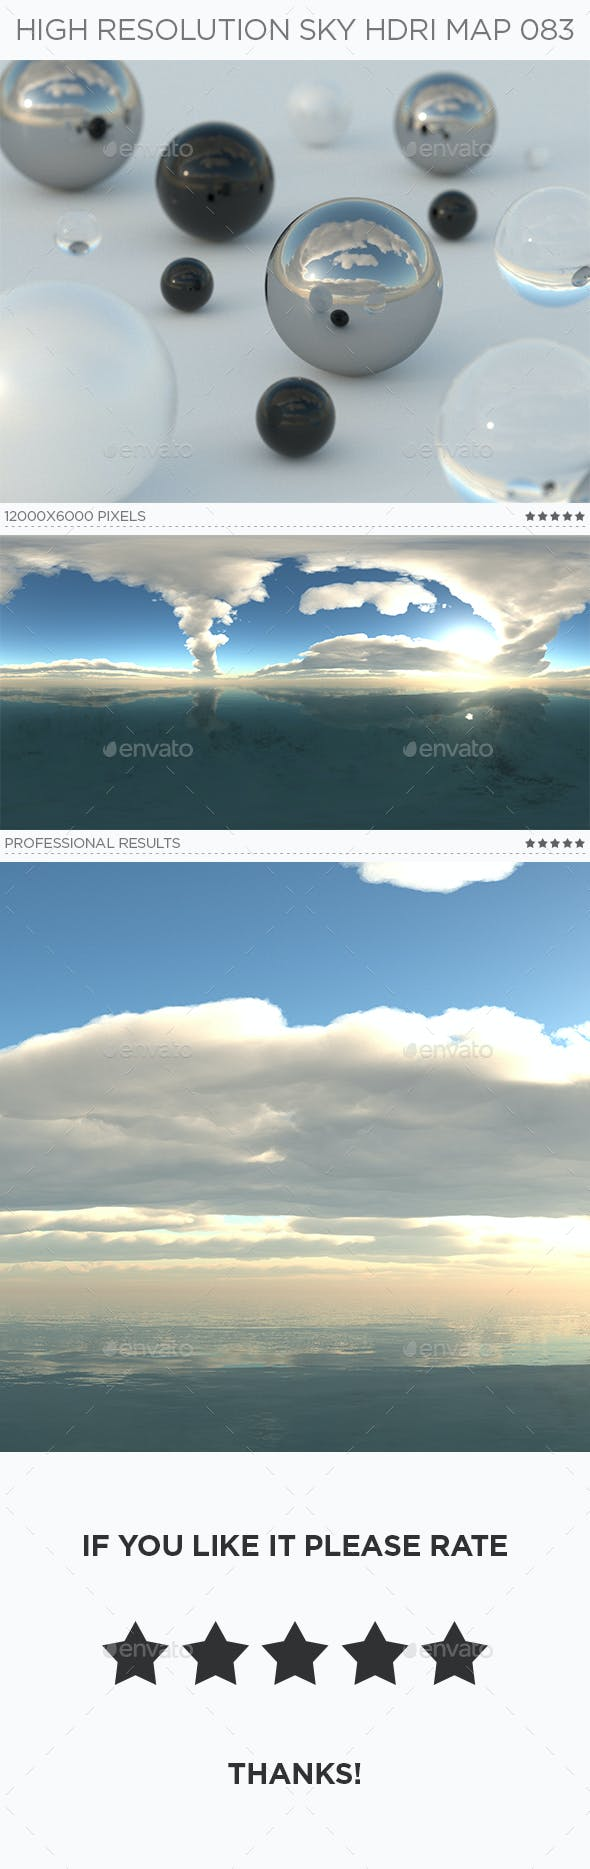 High Resolution Sky HDRi Map 083 - 3DOcean Item for Sale